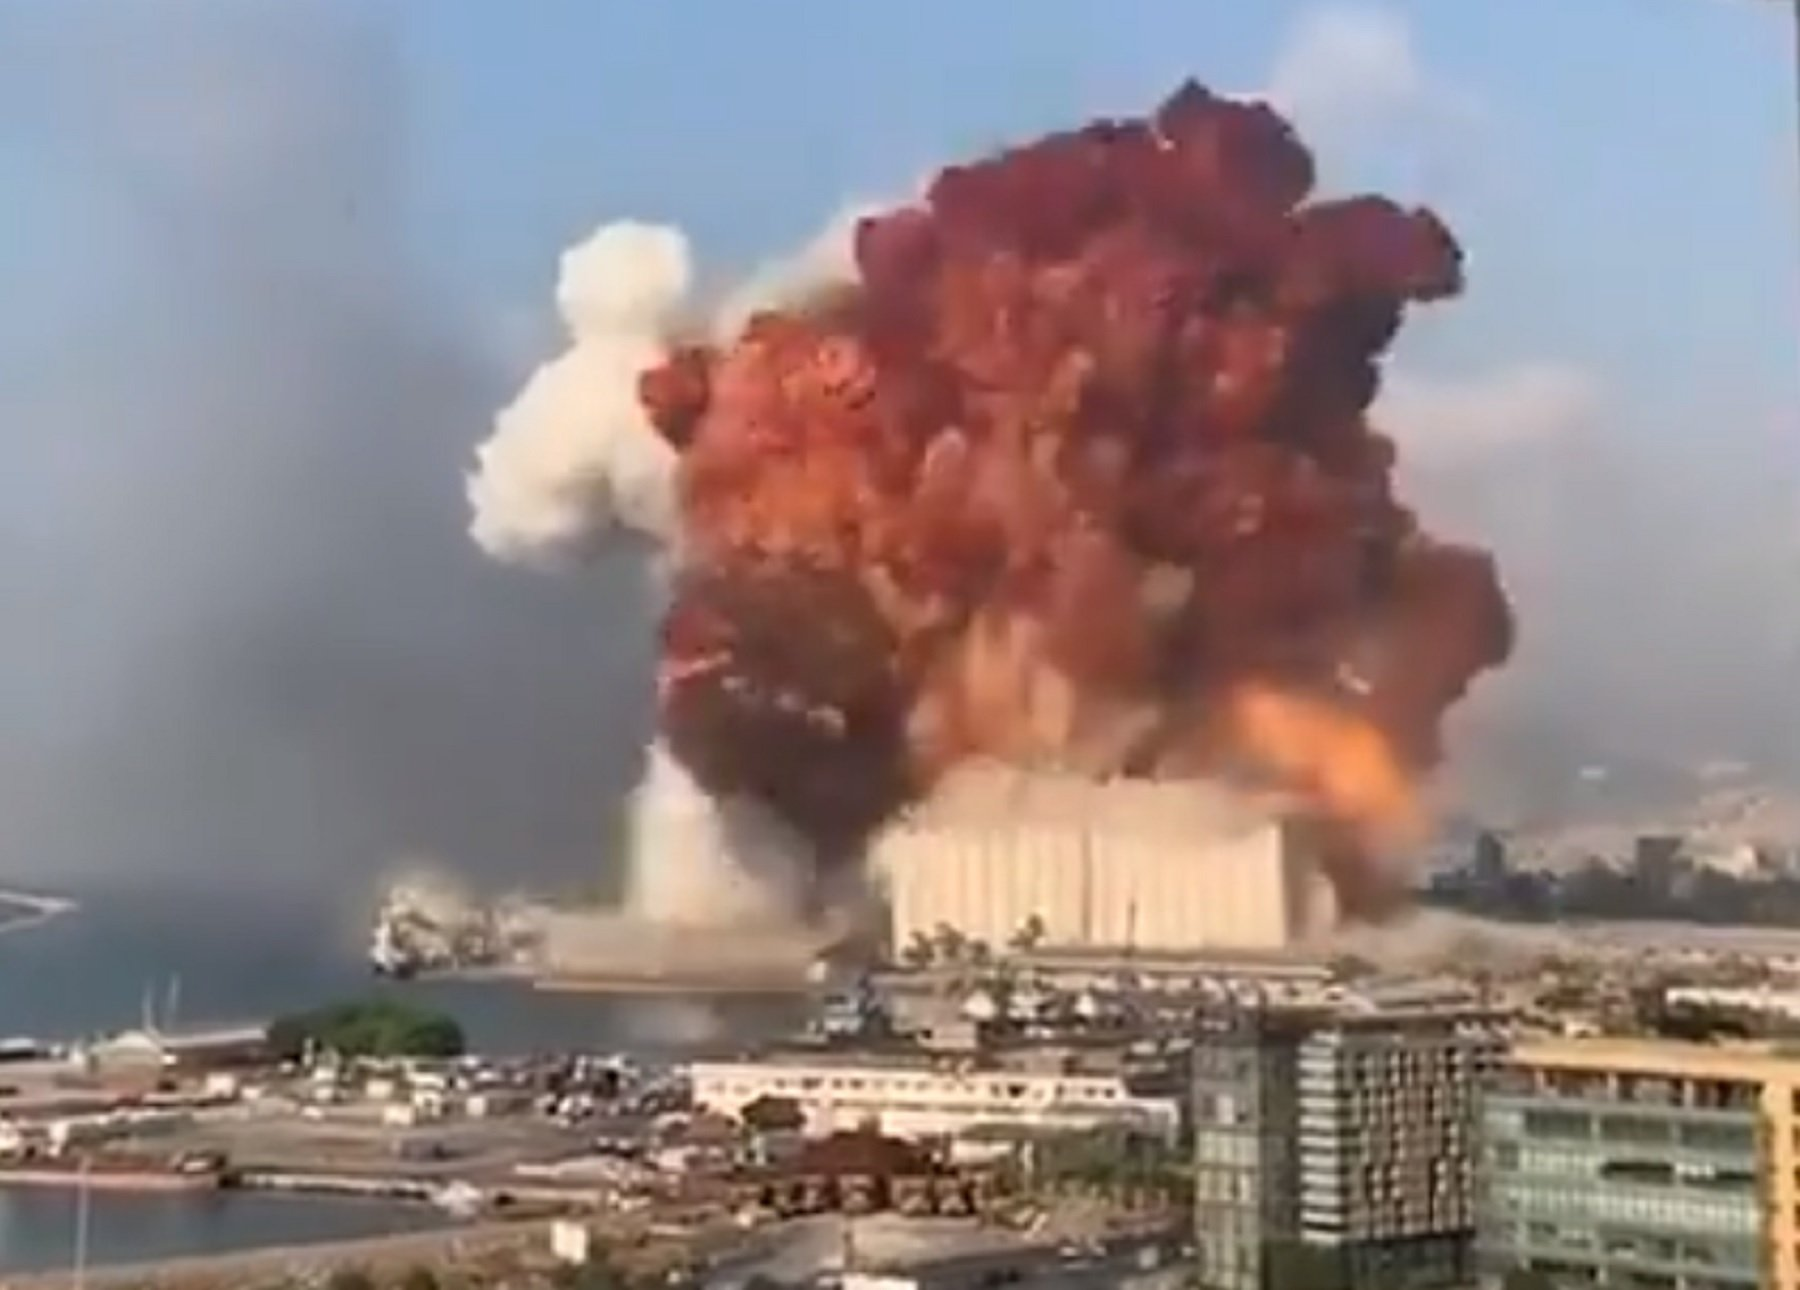 Massive Explosion in Beirut Leaves Thousands Injured